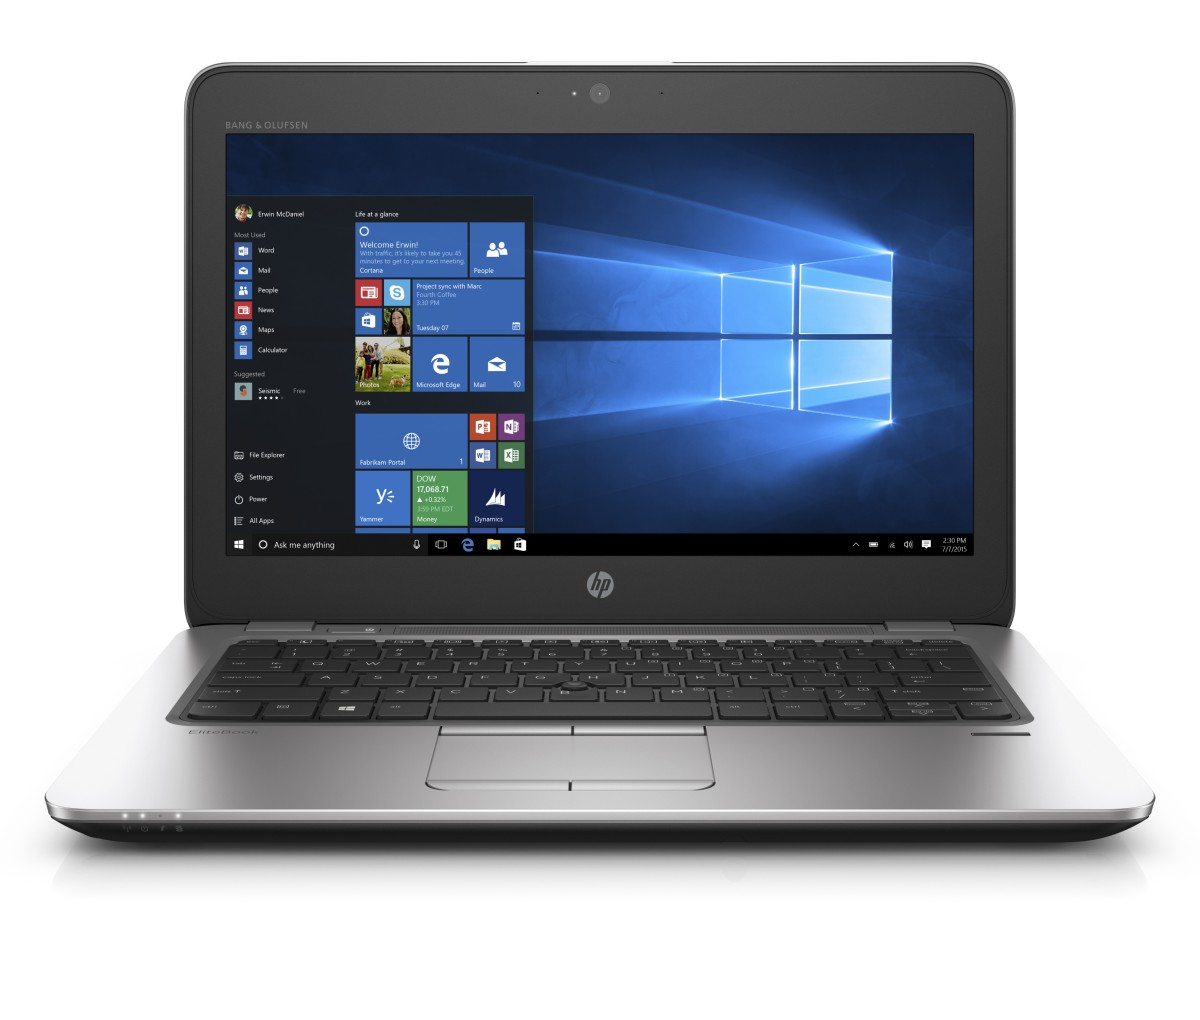 "HP EliteBook 820 G4 i5-7200U/8GB/256GB SSD TurboG2/12.5"" FHD/backlit keyb /Win 10 Pro"